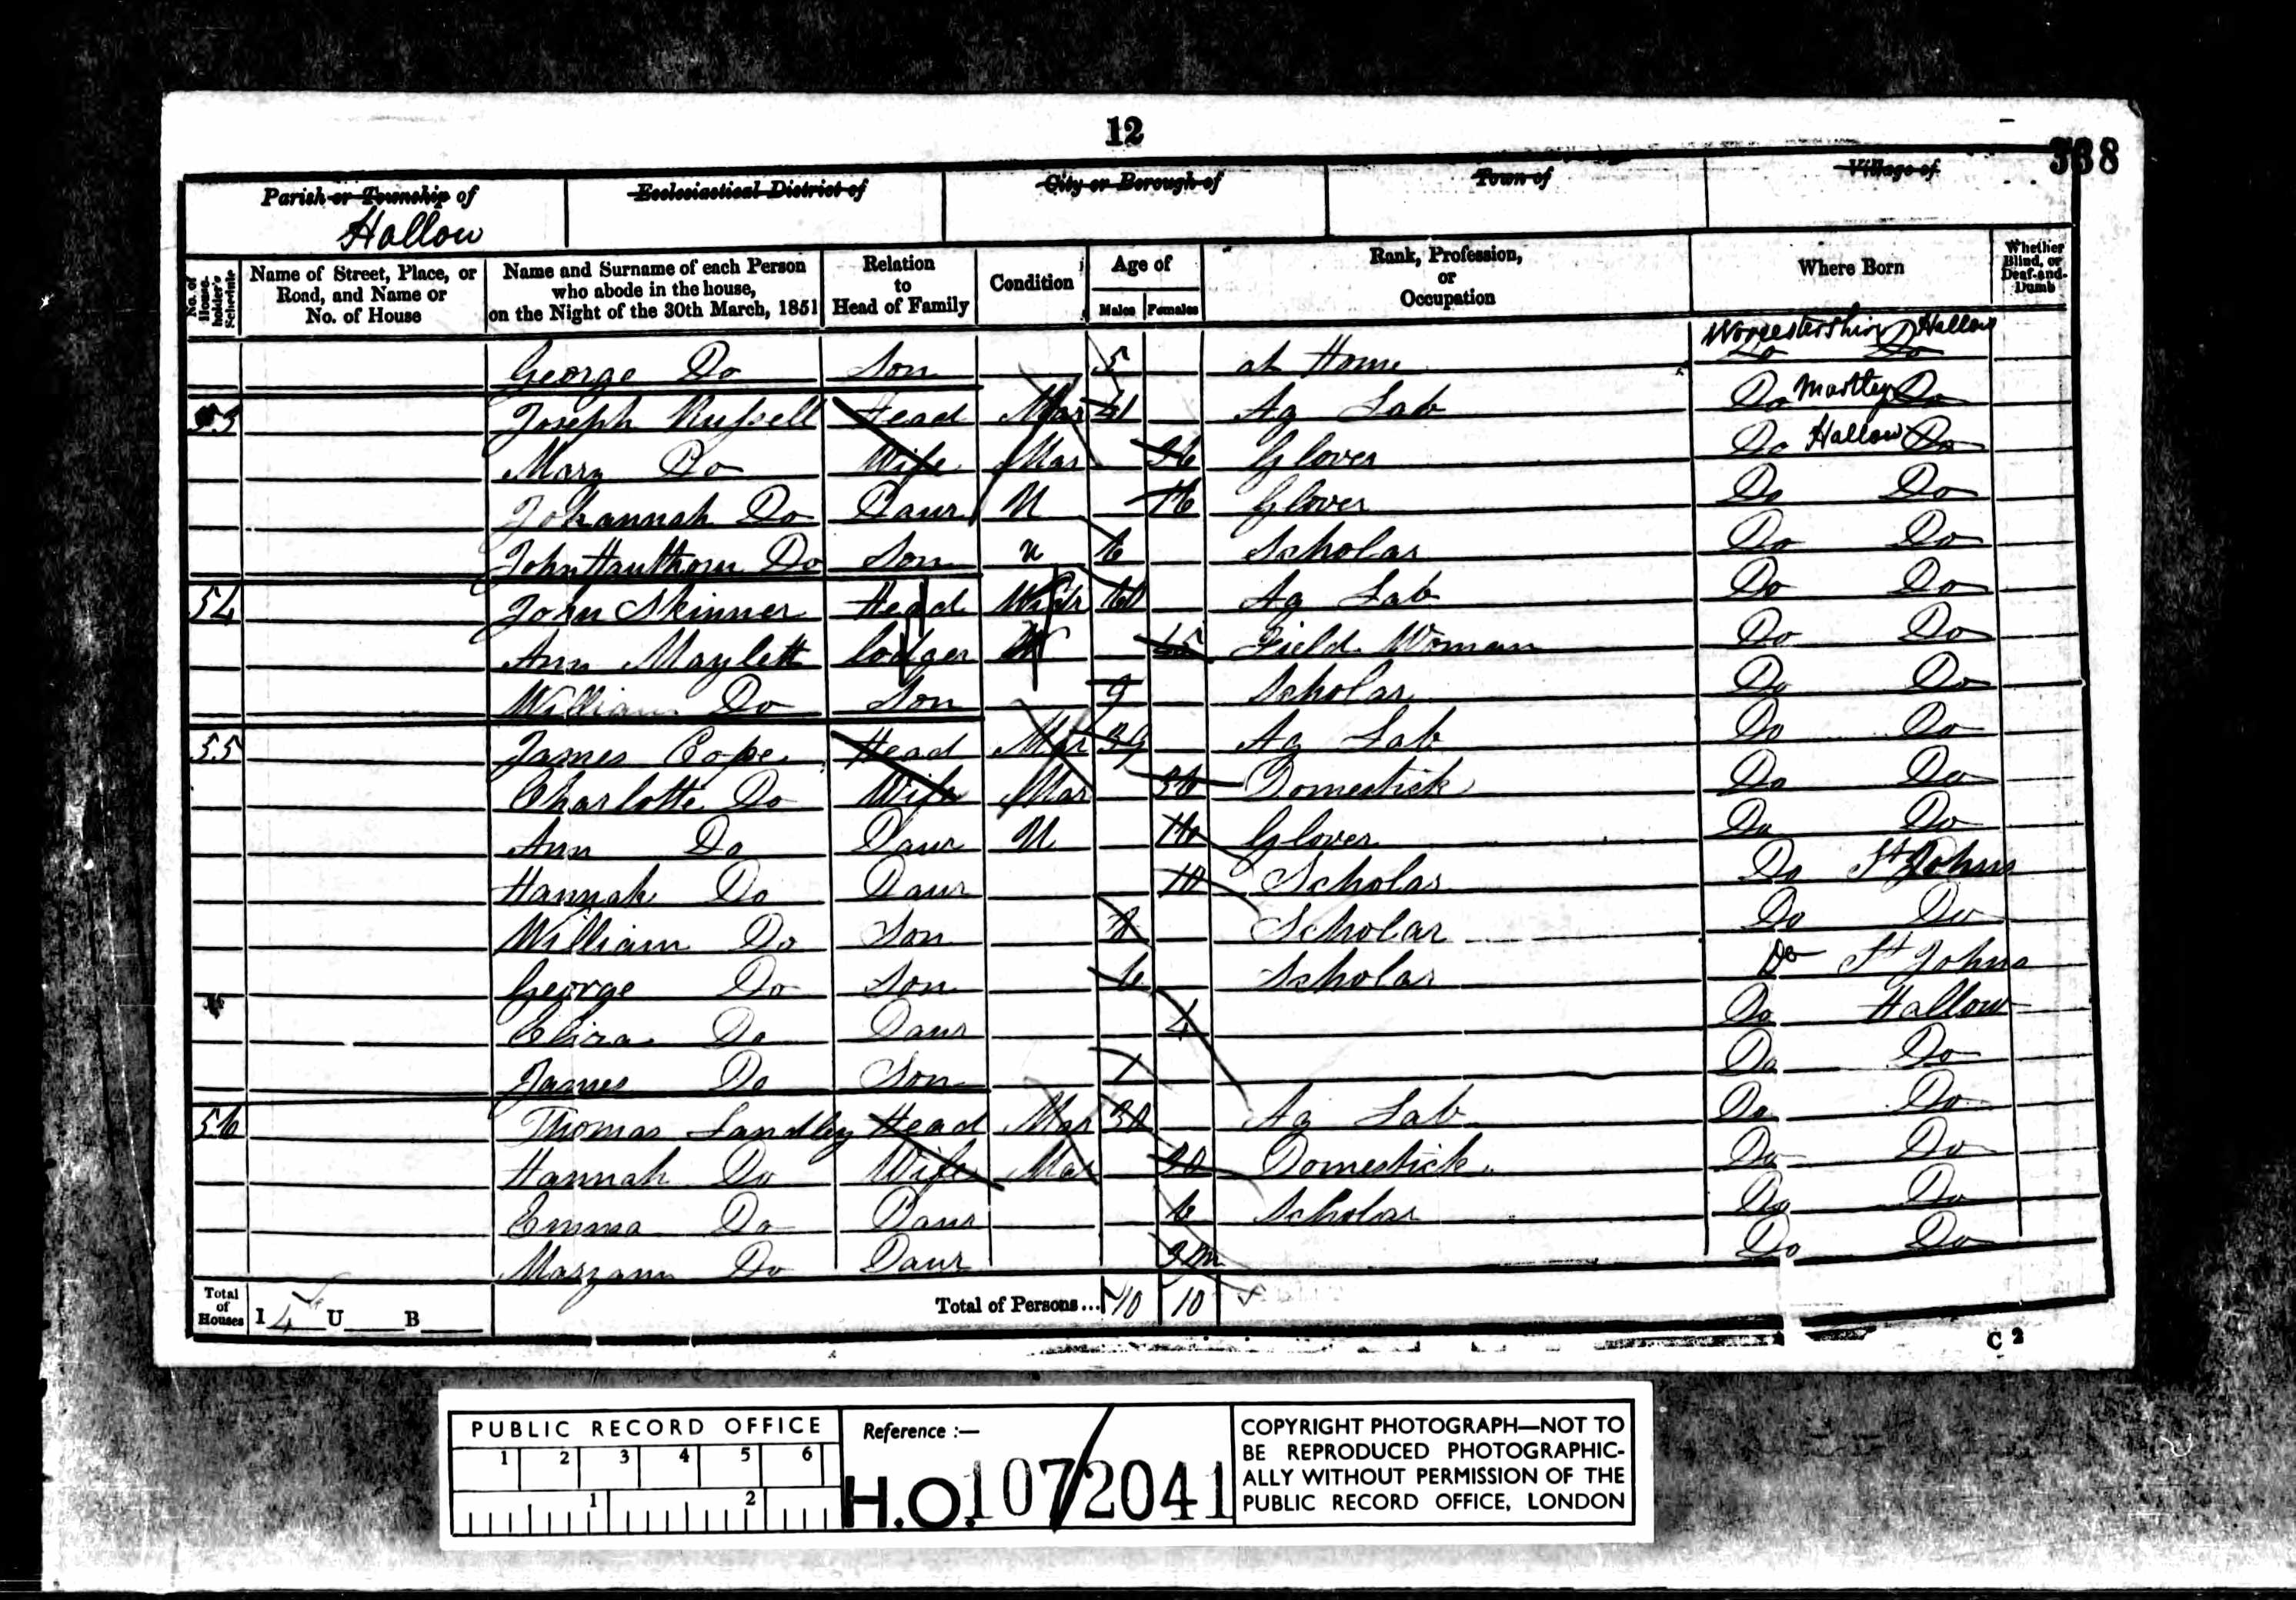 1851 England Census Record for James Cope